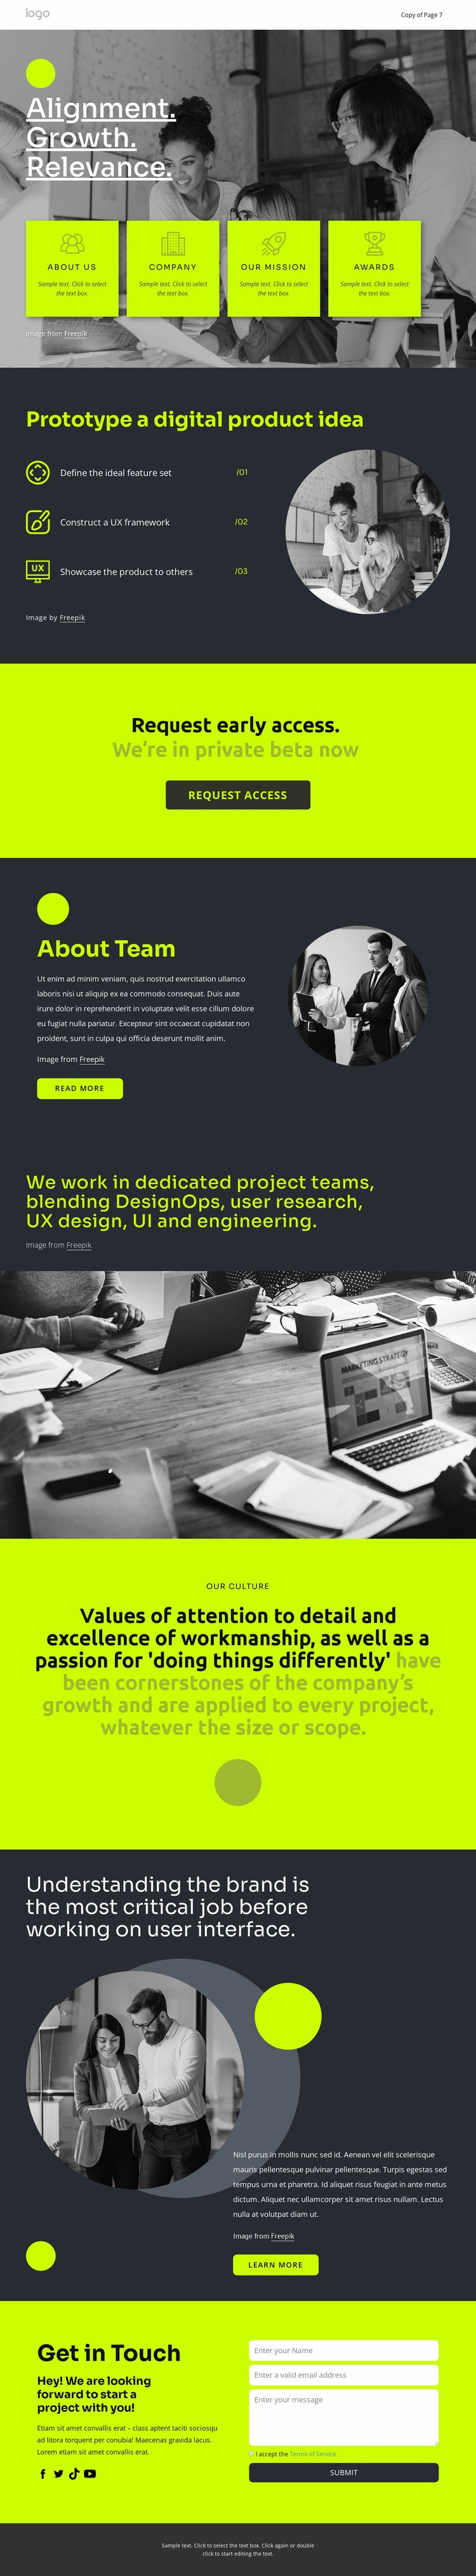 Build great digital products Web Page Designer